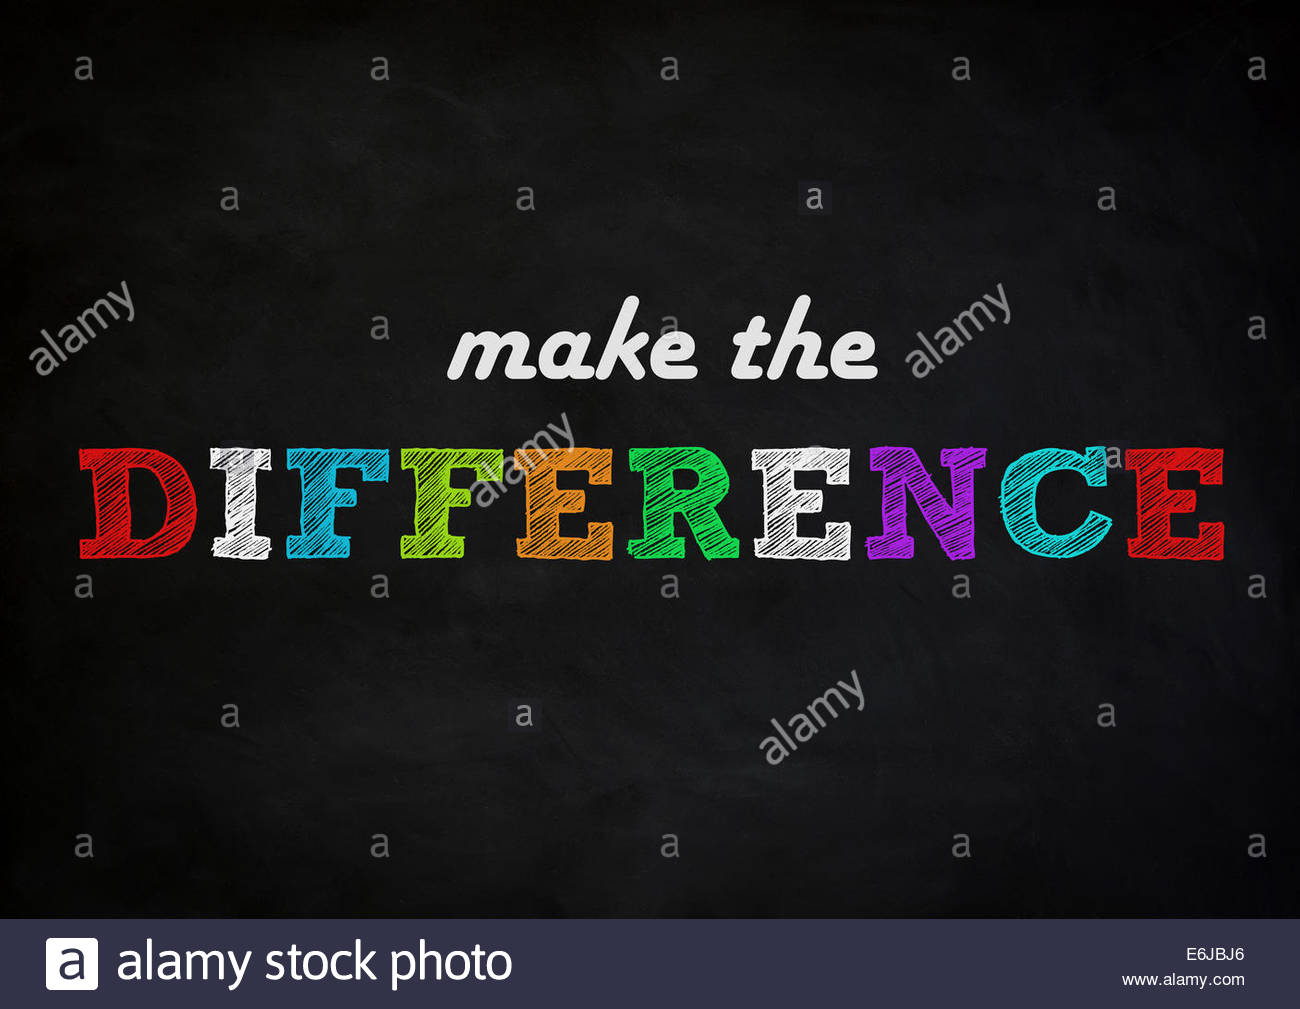 make the difference - chalkboard concept - Stock Image